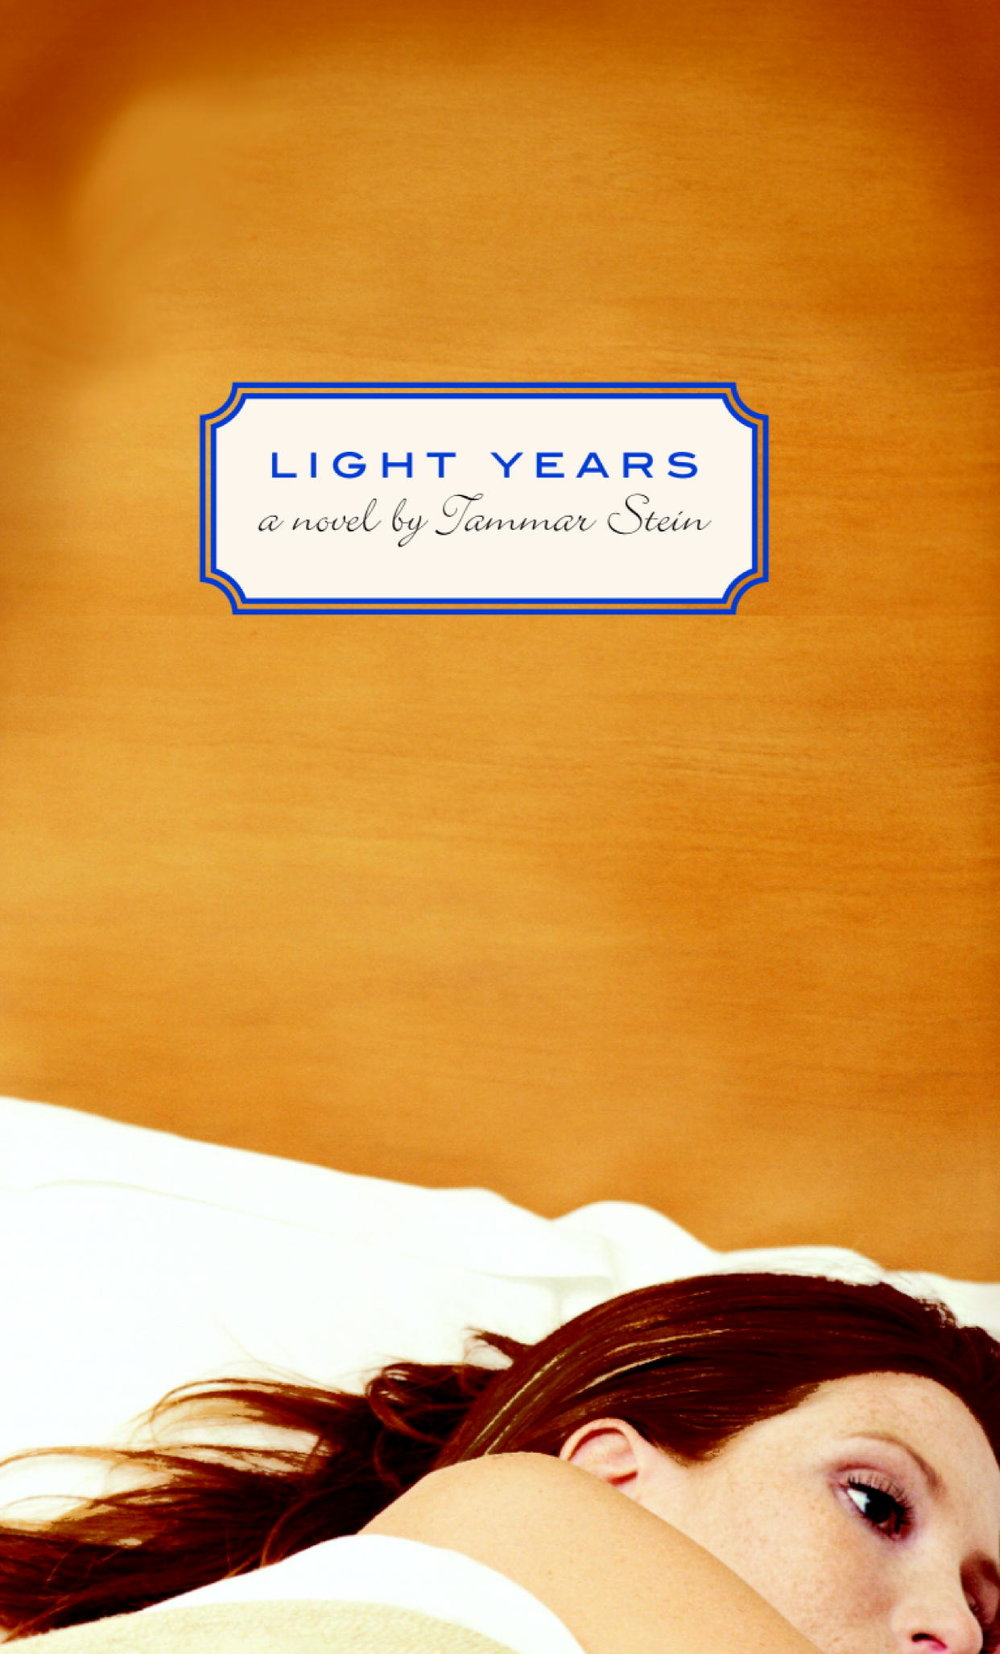 Light Years cover hd.jpg